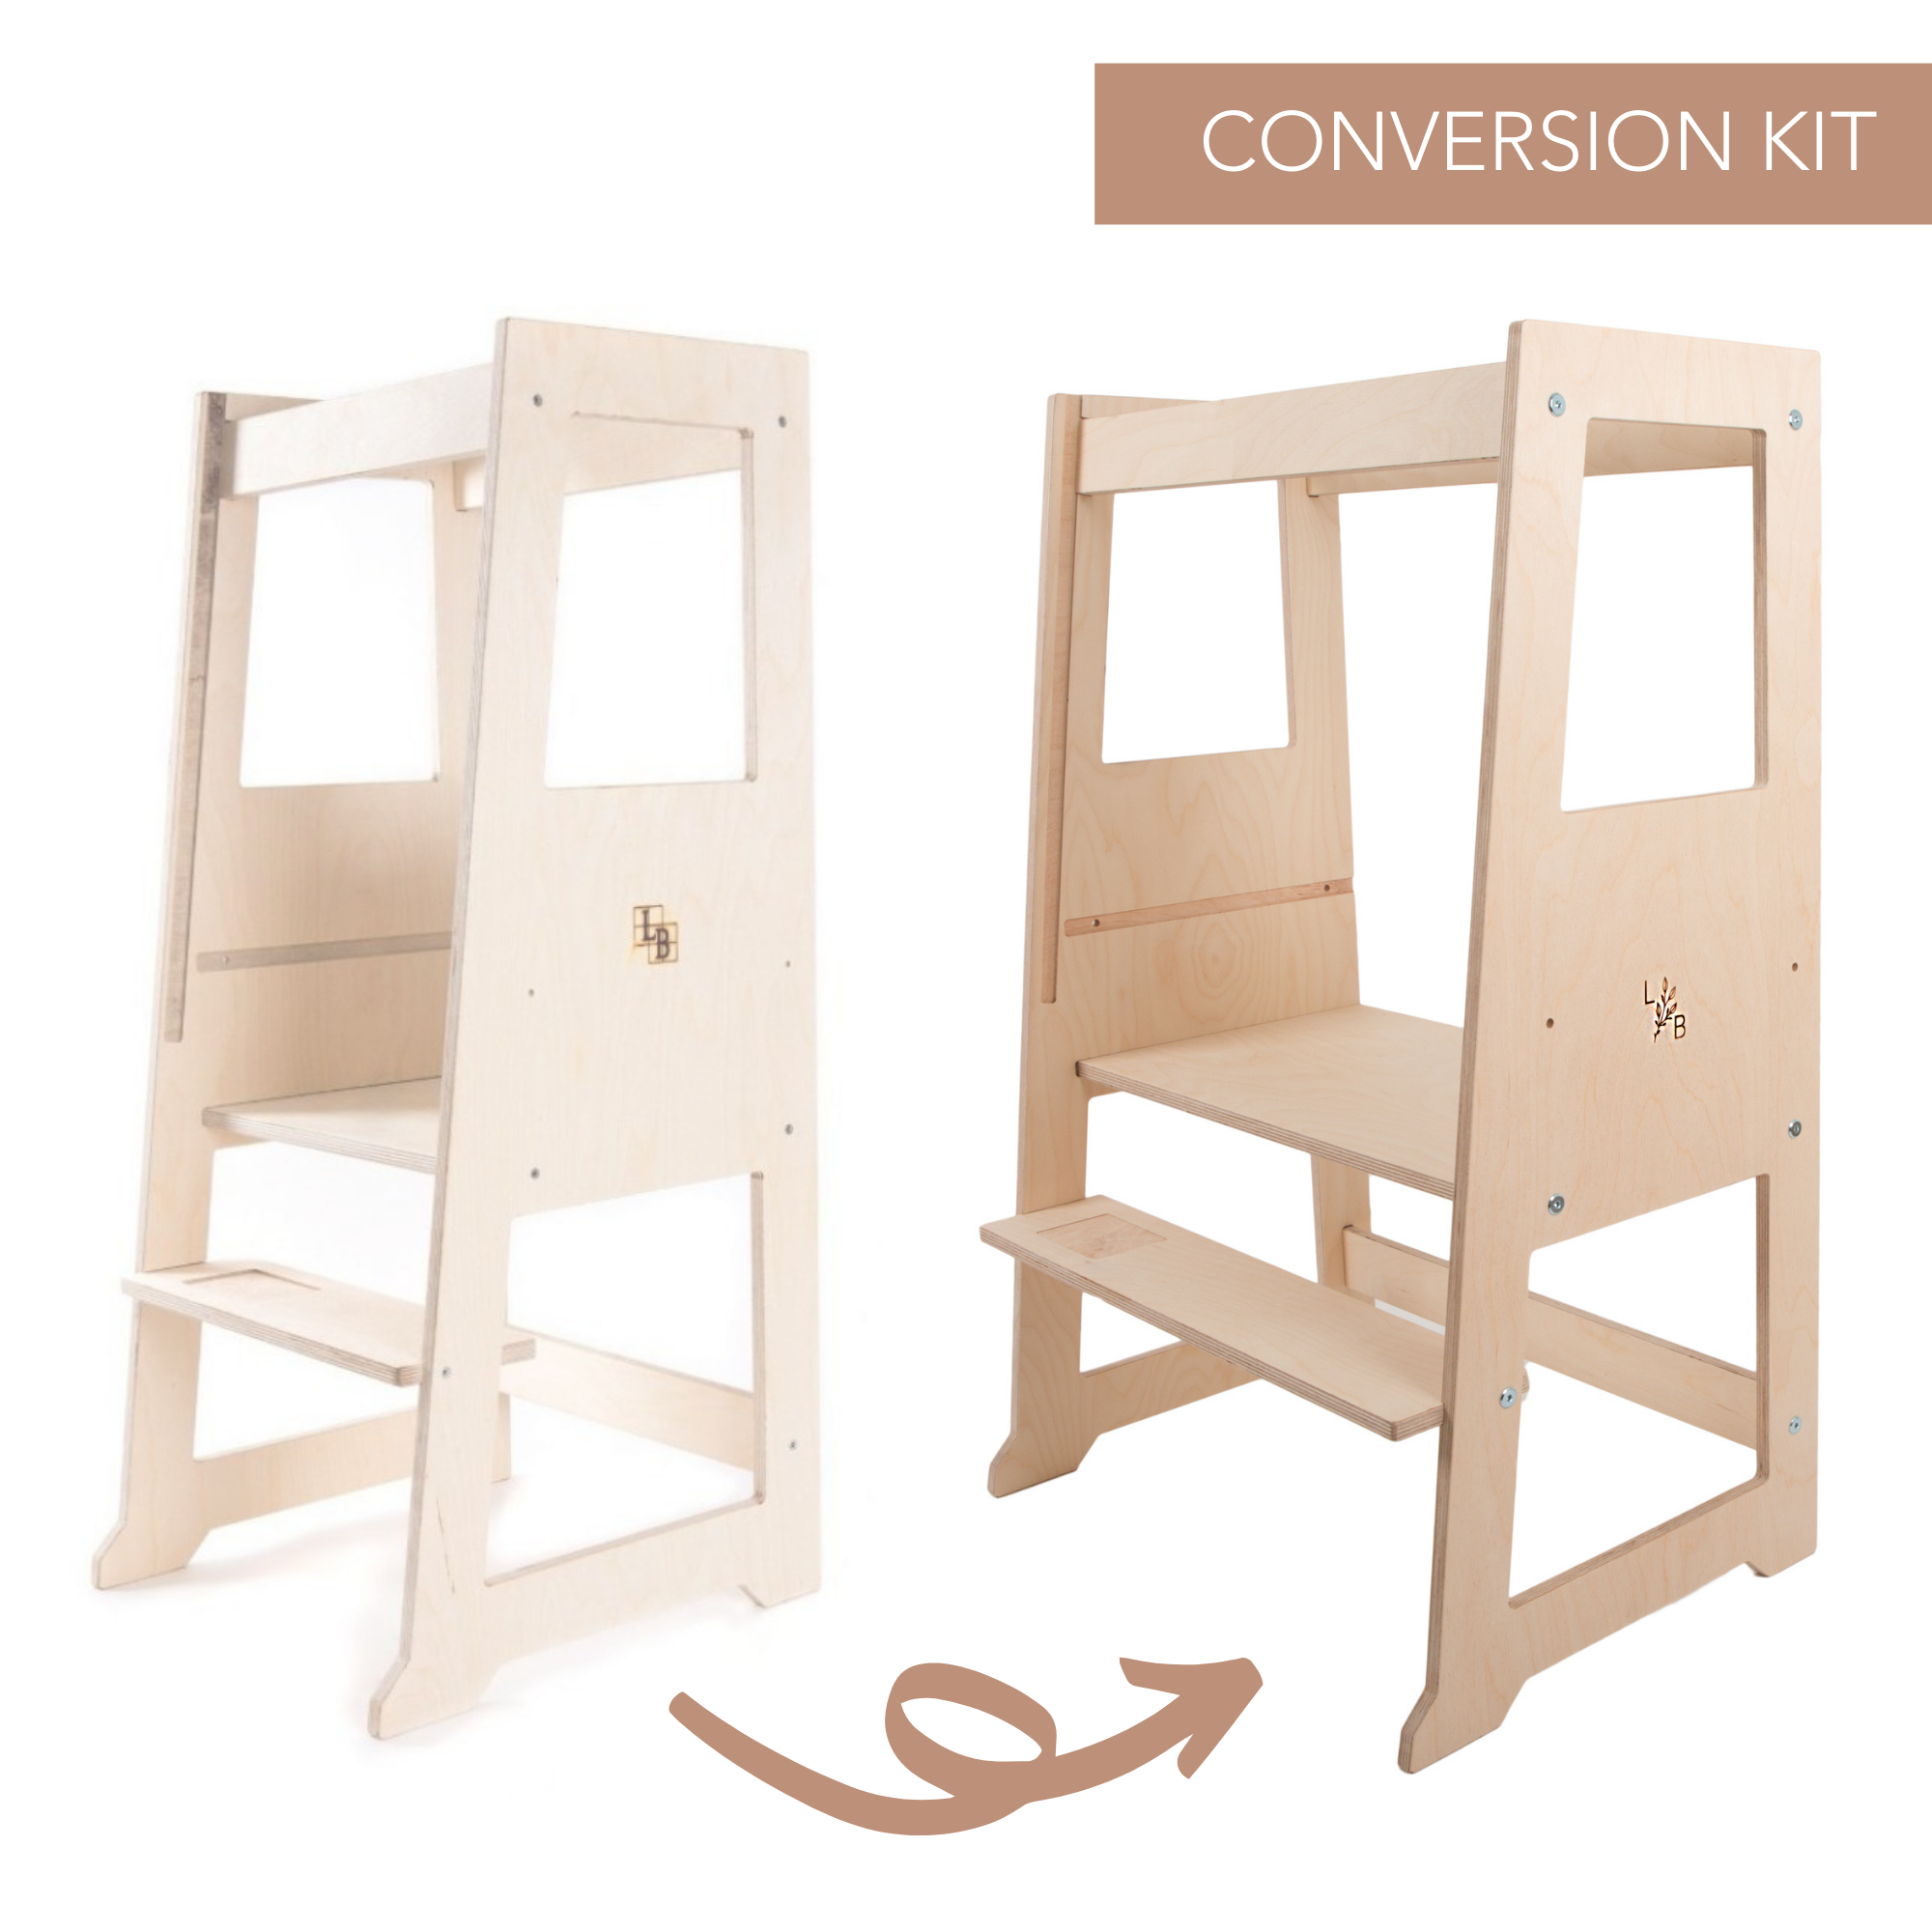 Single to Double Learning Tower Conversion Kit